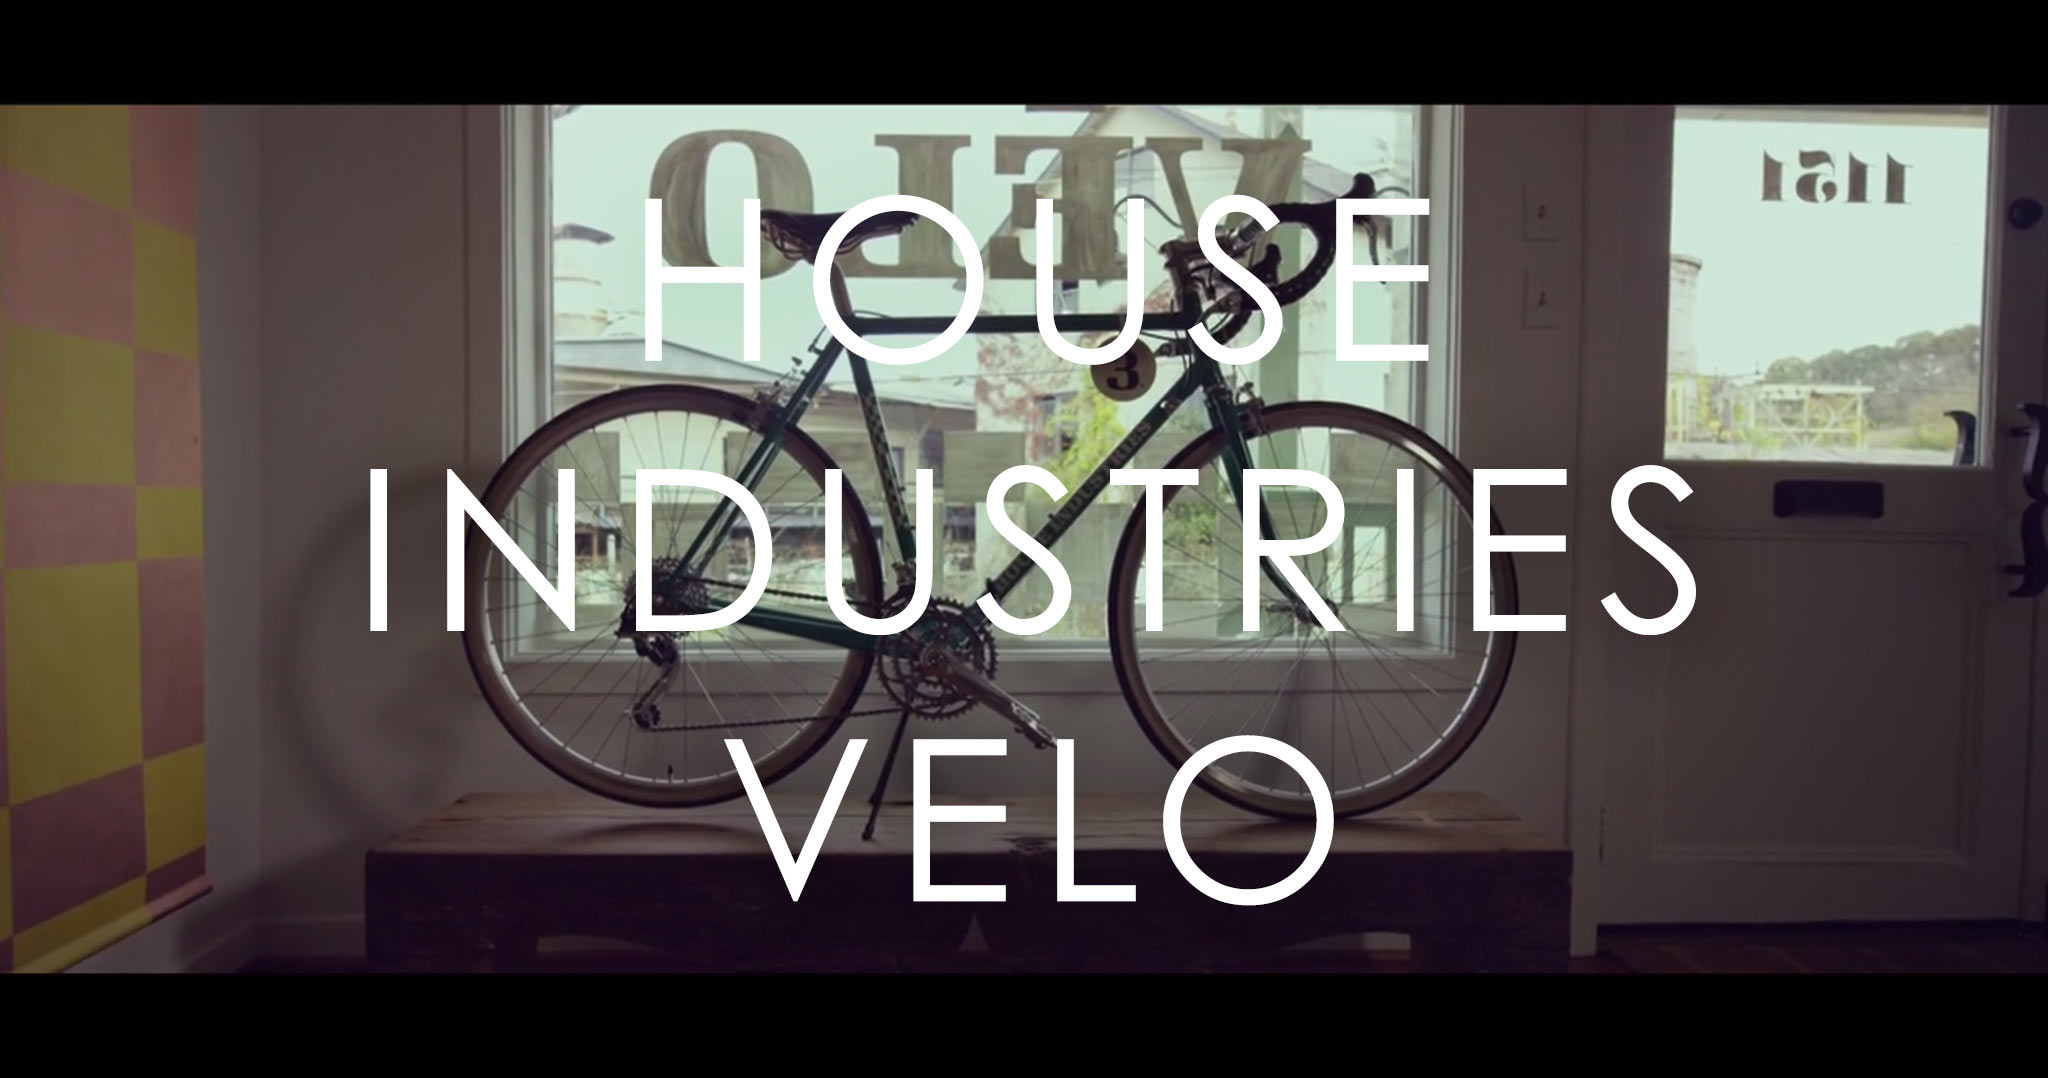 House Industries: Velo—A Film Inspired by a Typeface Inspired by Cycling